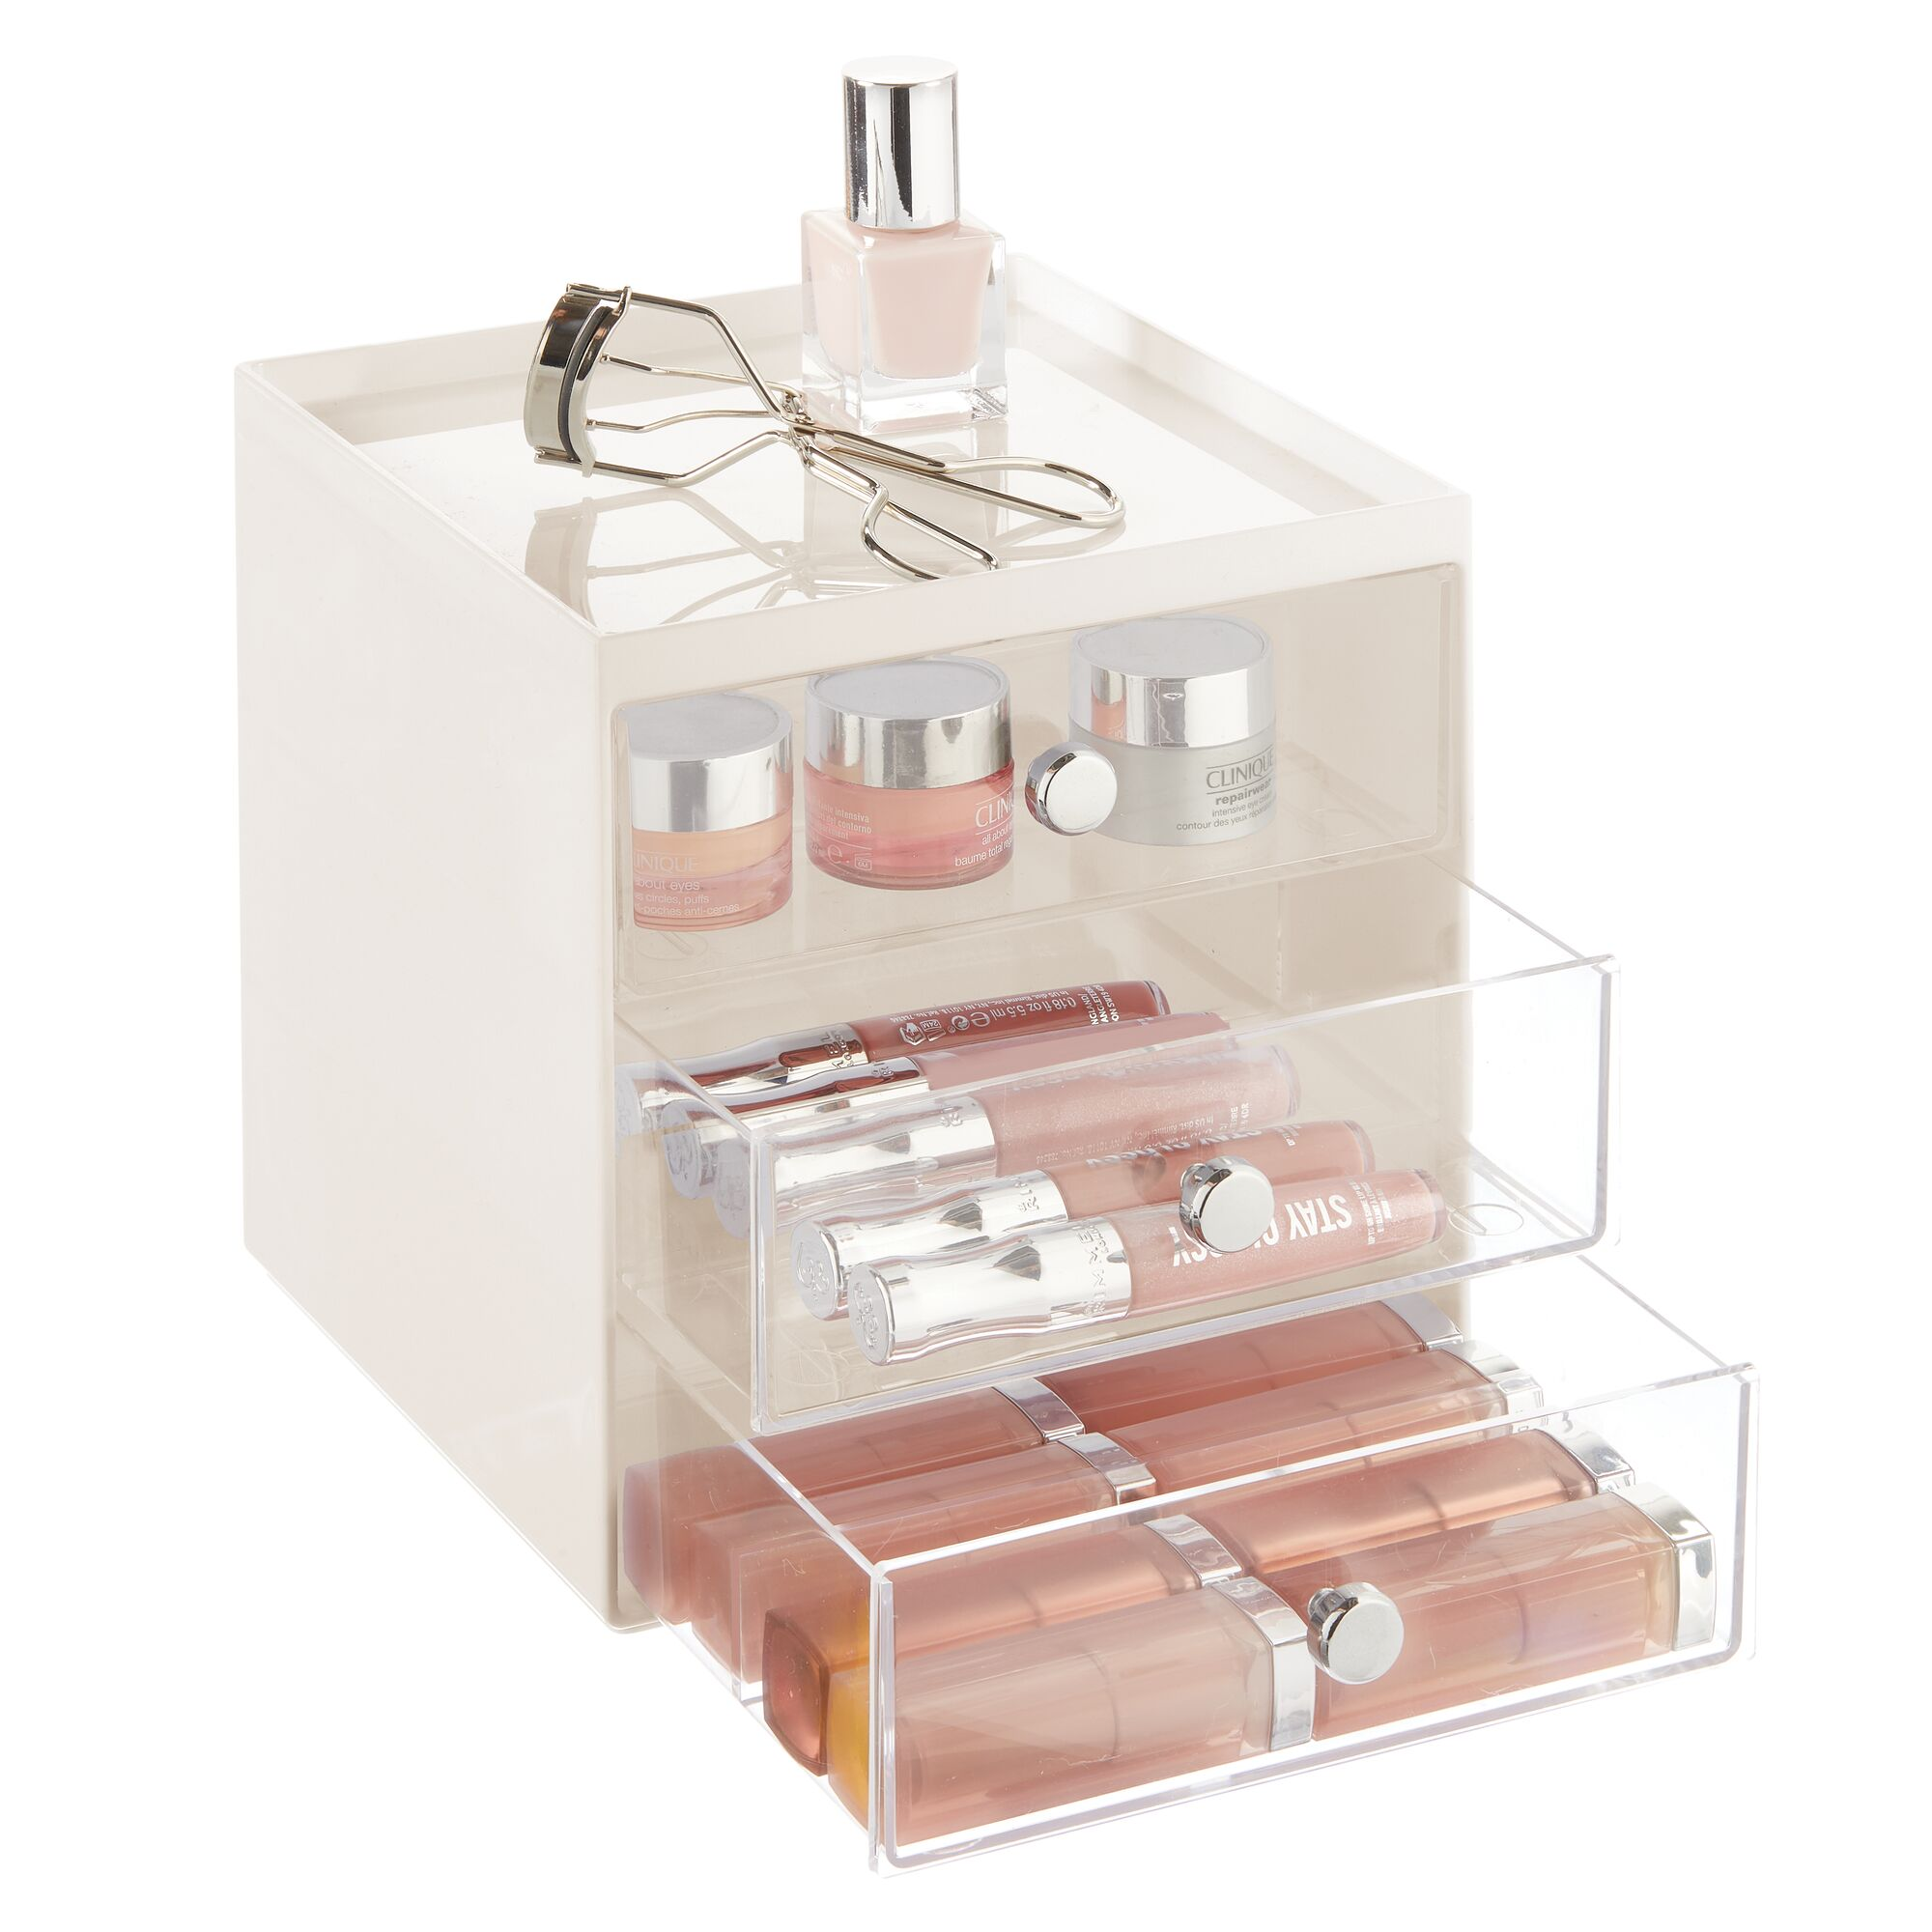 mDesign-Plastic-Makeup-Storage-Organizer-Cube-3-Drawers thumbnail 31